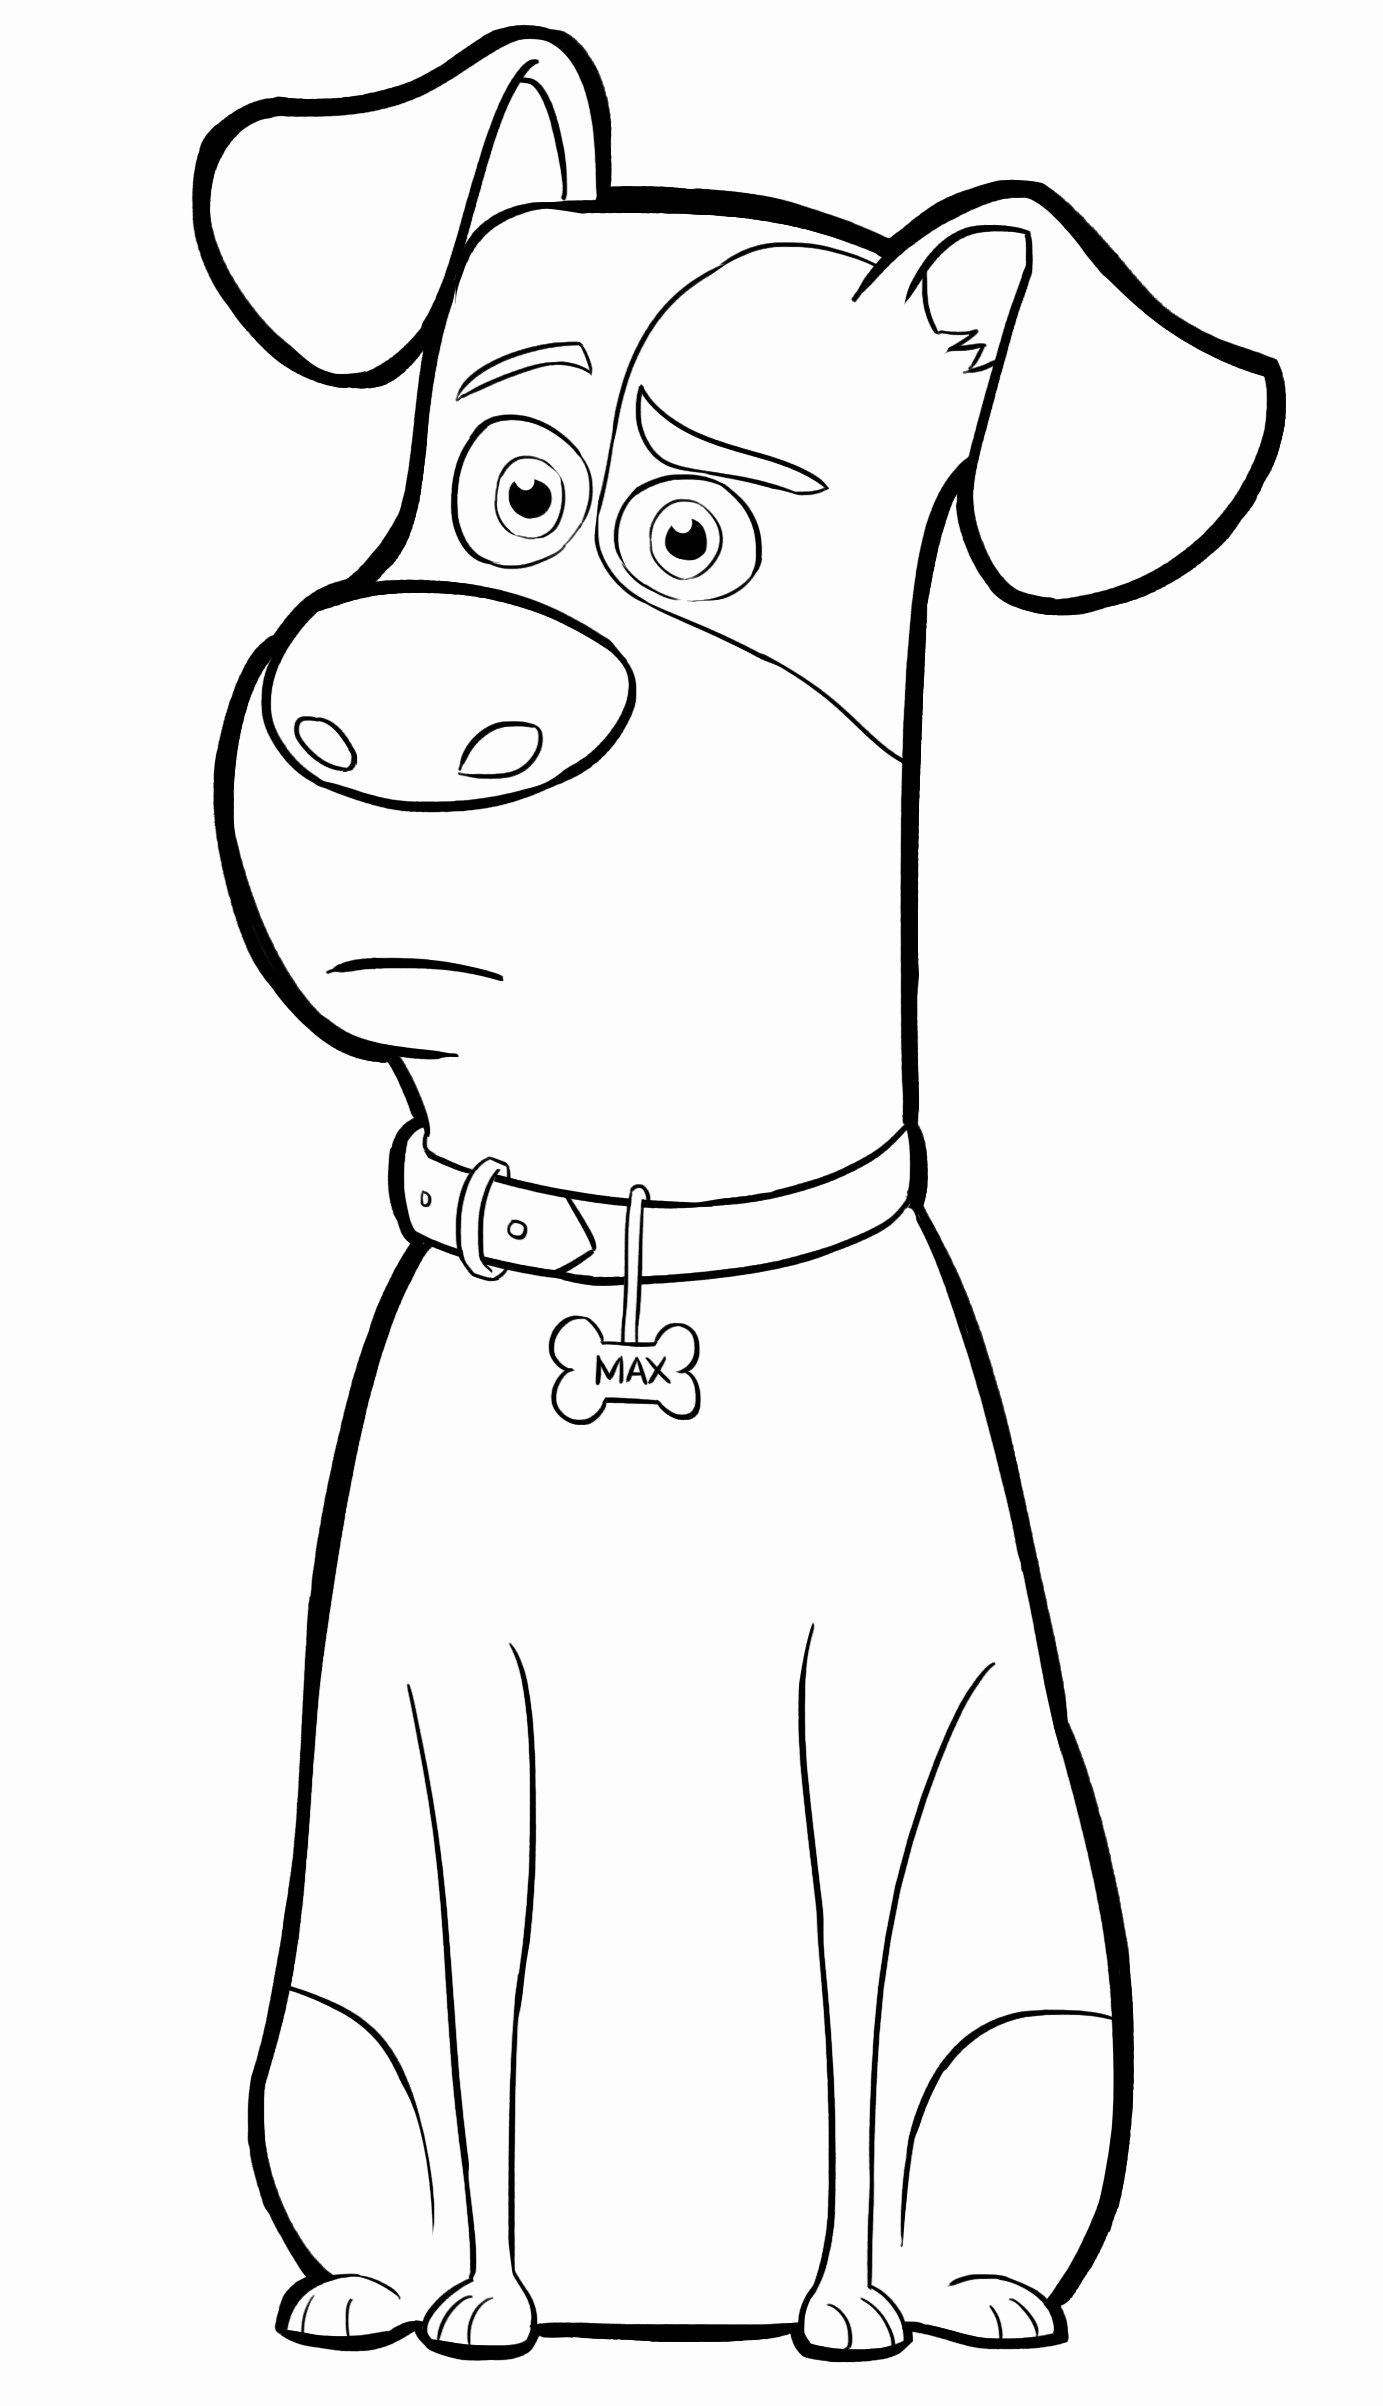 Drawing Book For Kids 20 Pages In 2020 Puppy Coloring Pages Secret Life Of Pets Dog Coloring Page